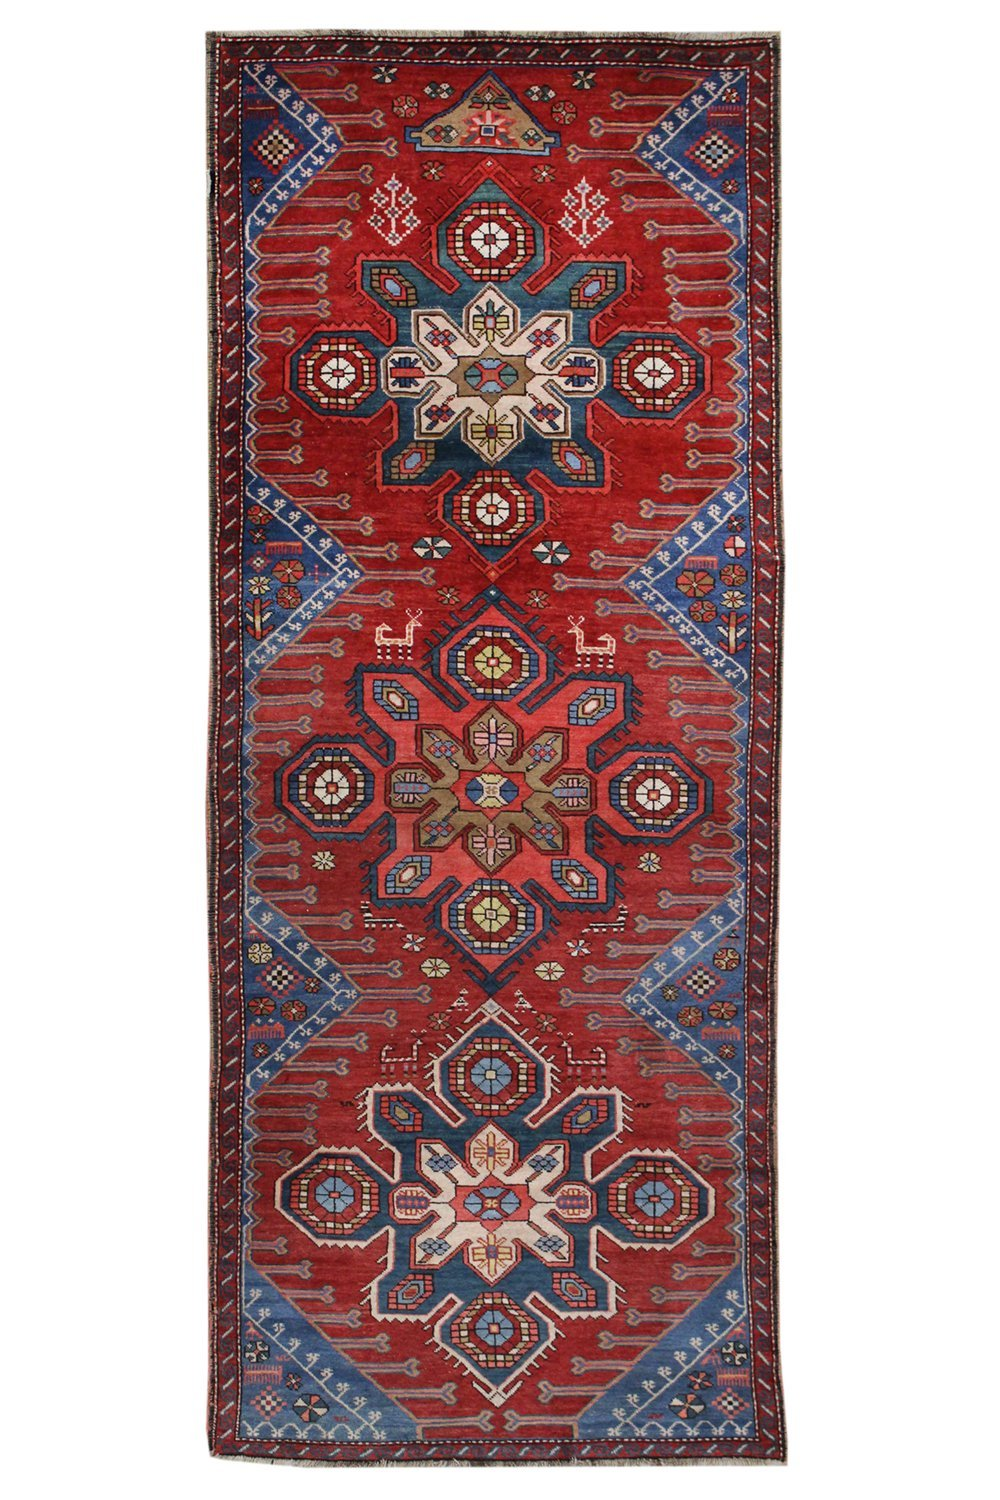 Antique Karabagh Handwoven Tribal Rug